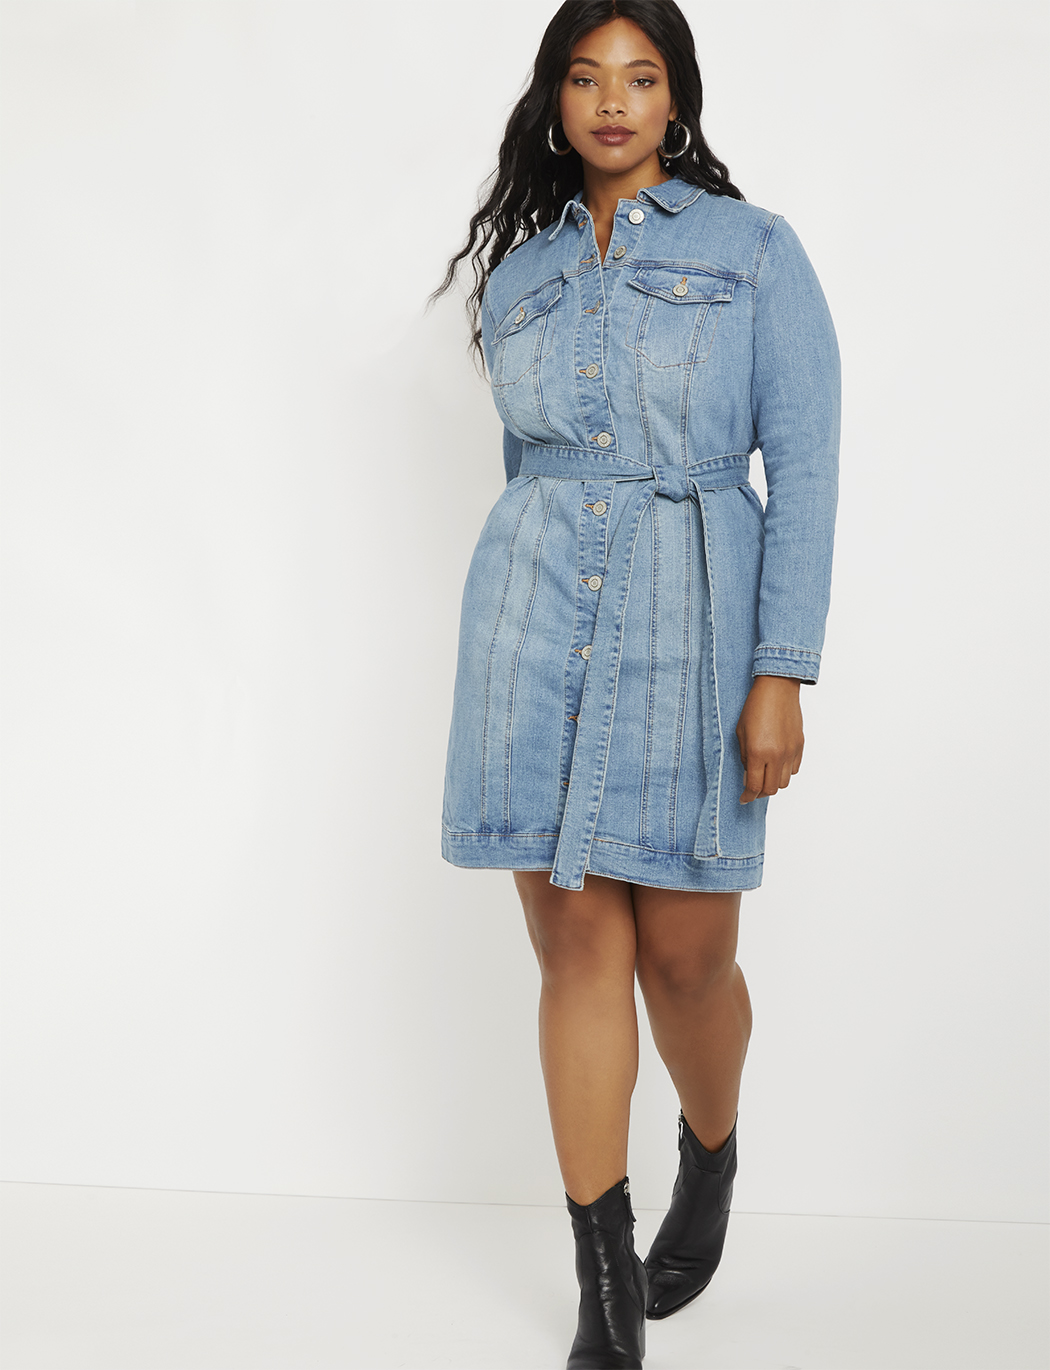 Denim Jacket Dress | Women\'s Plus Size Dresses | ELOQUII